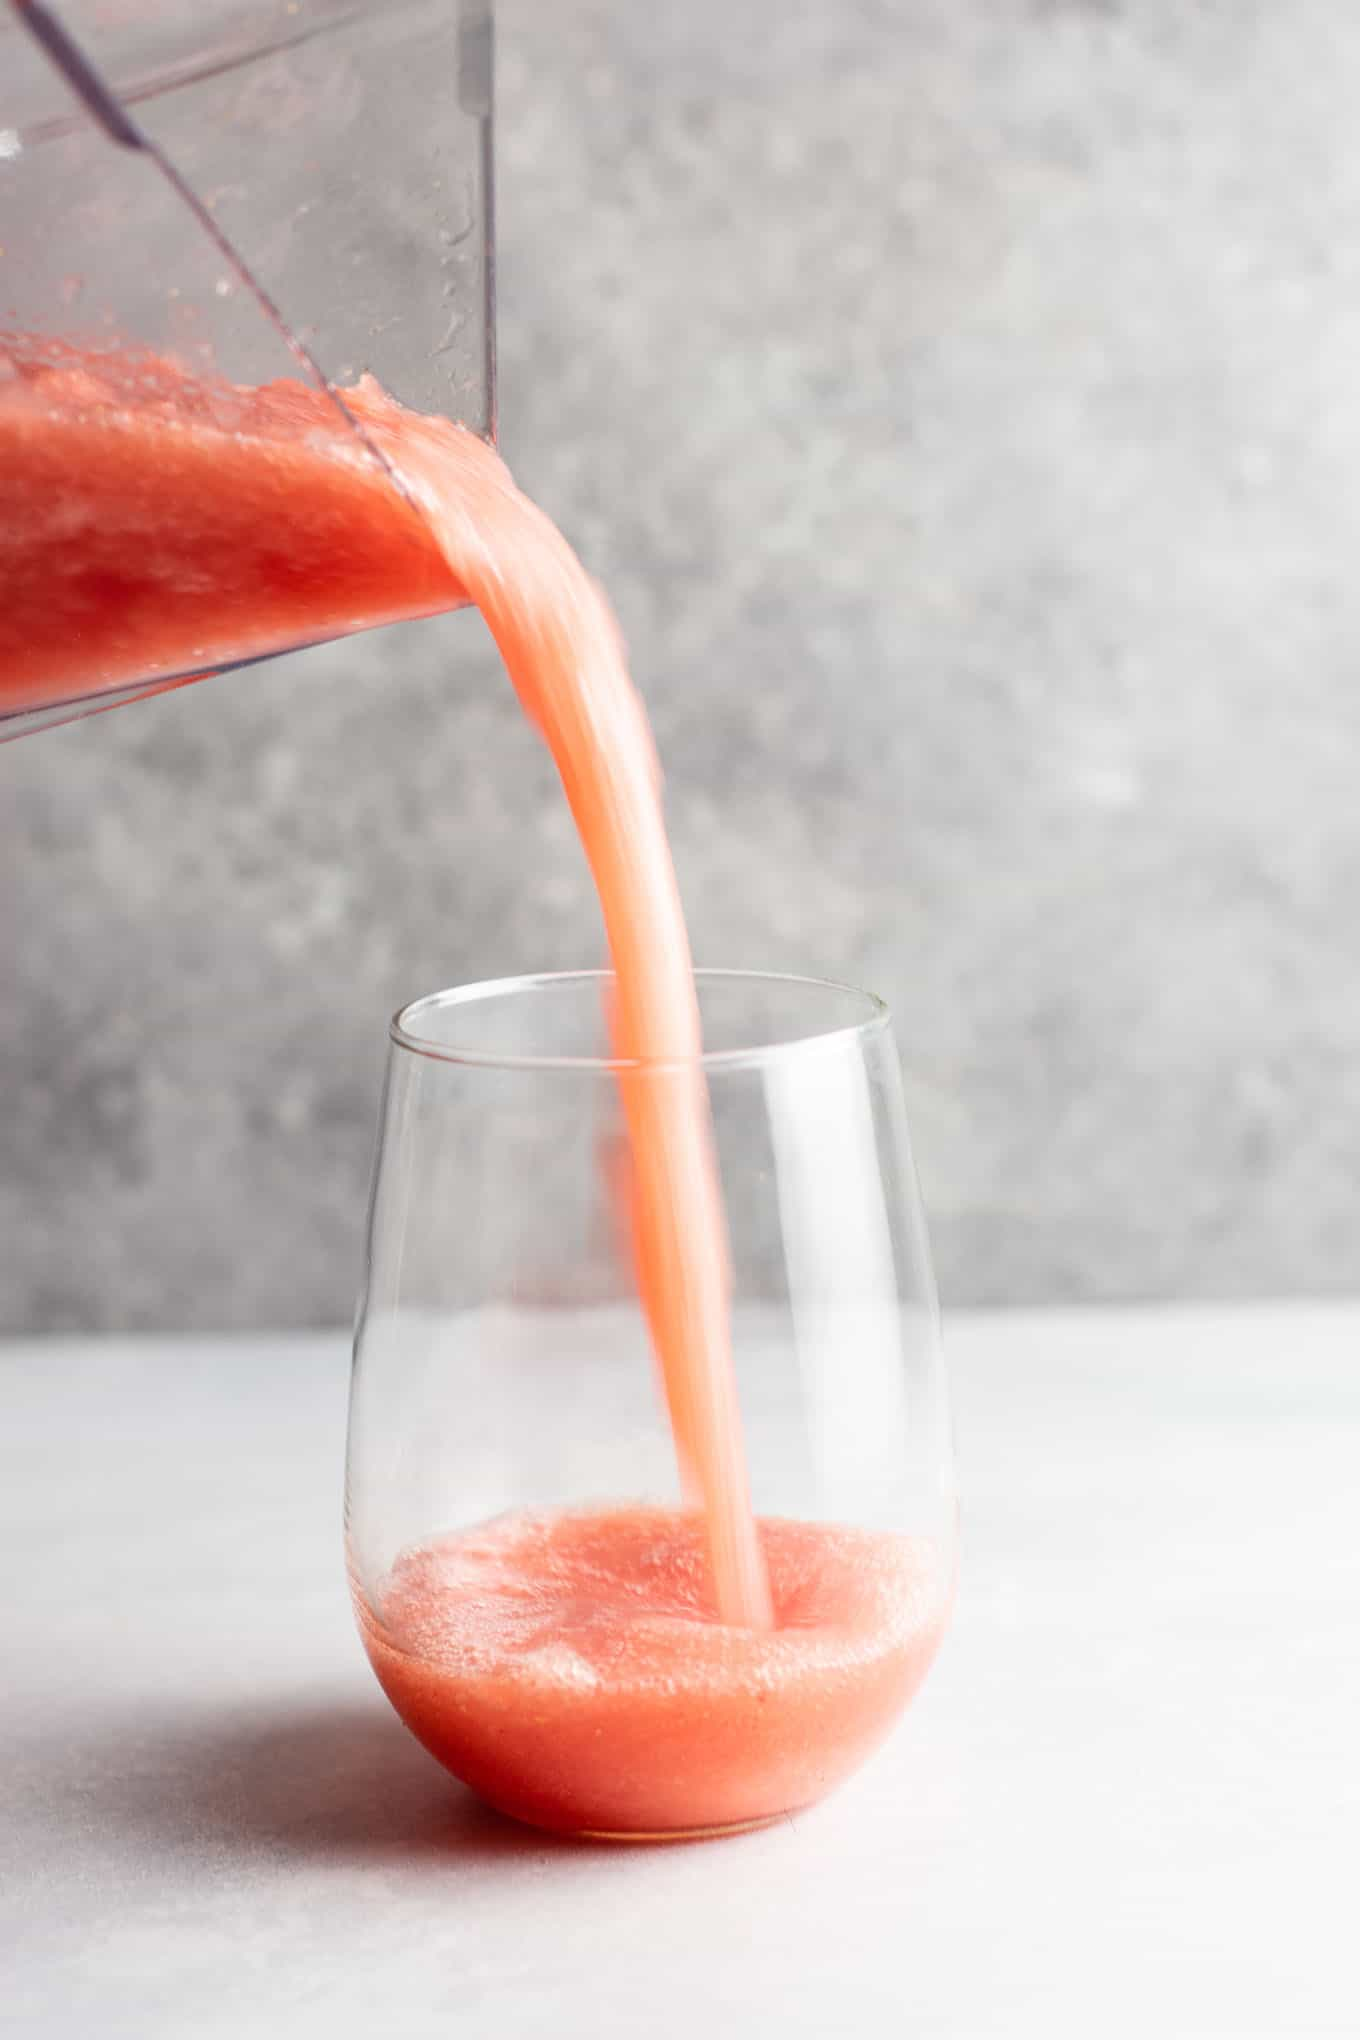 Watermelon white wine slushies – these are perfect for summer! #whitewineslushie #whitewineslushies #slushierecipe #watermelon #drink #summer #alcohol